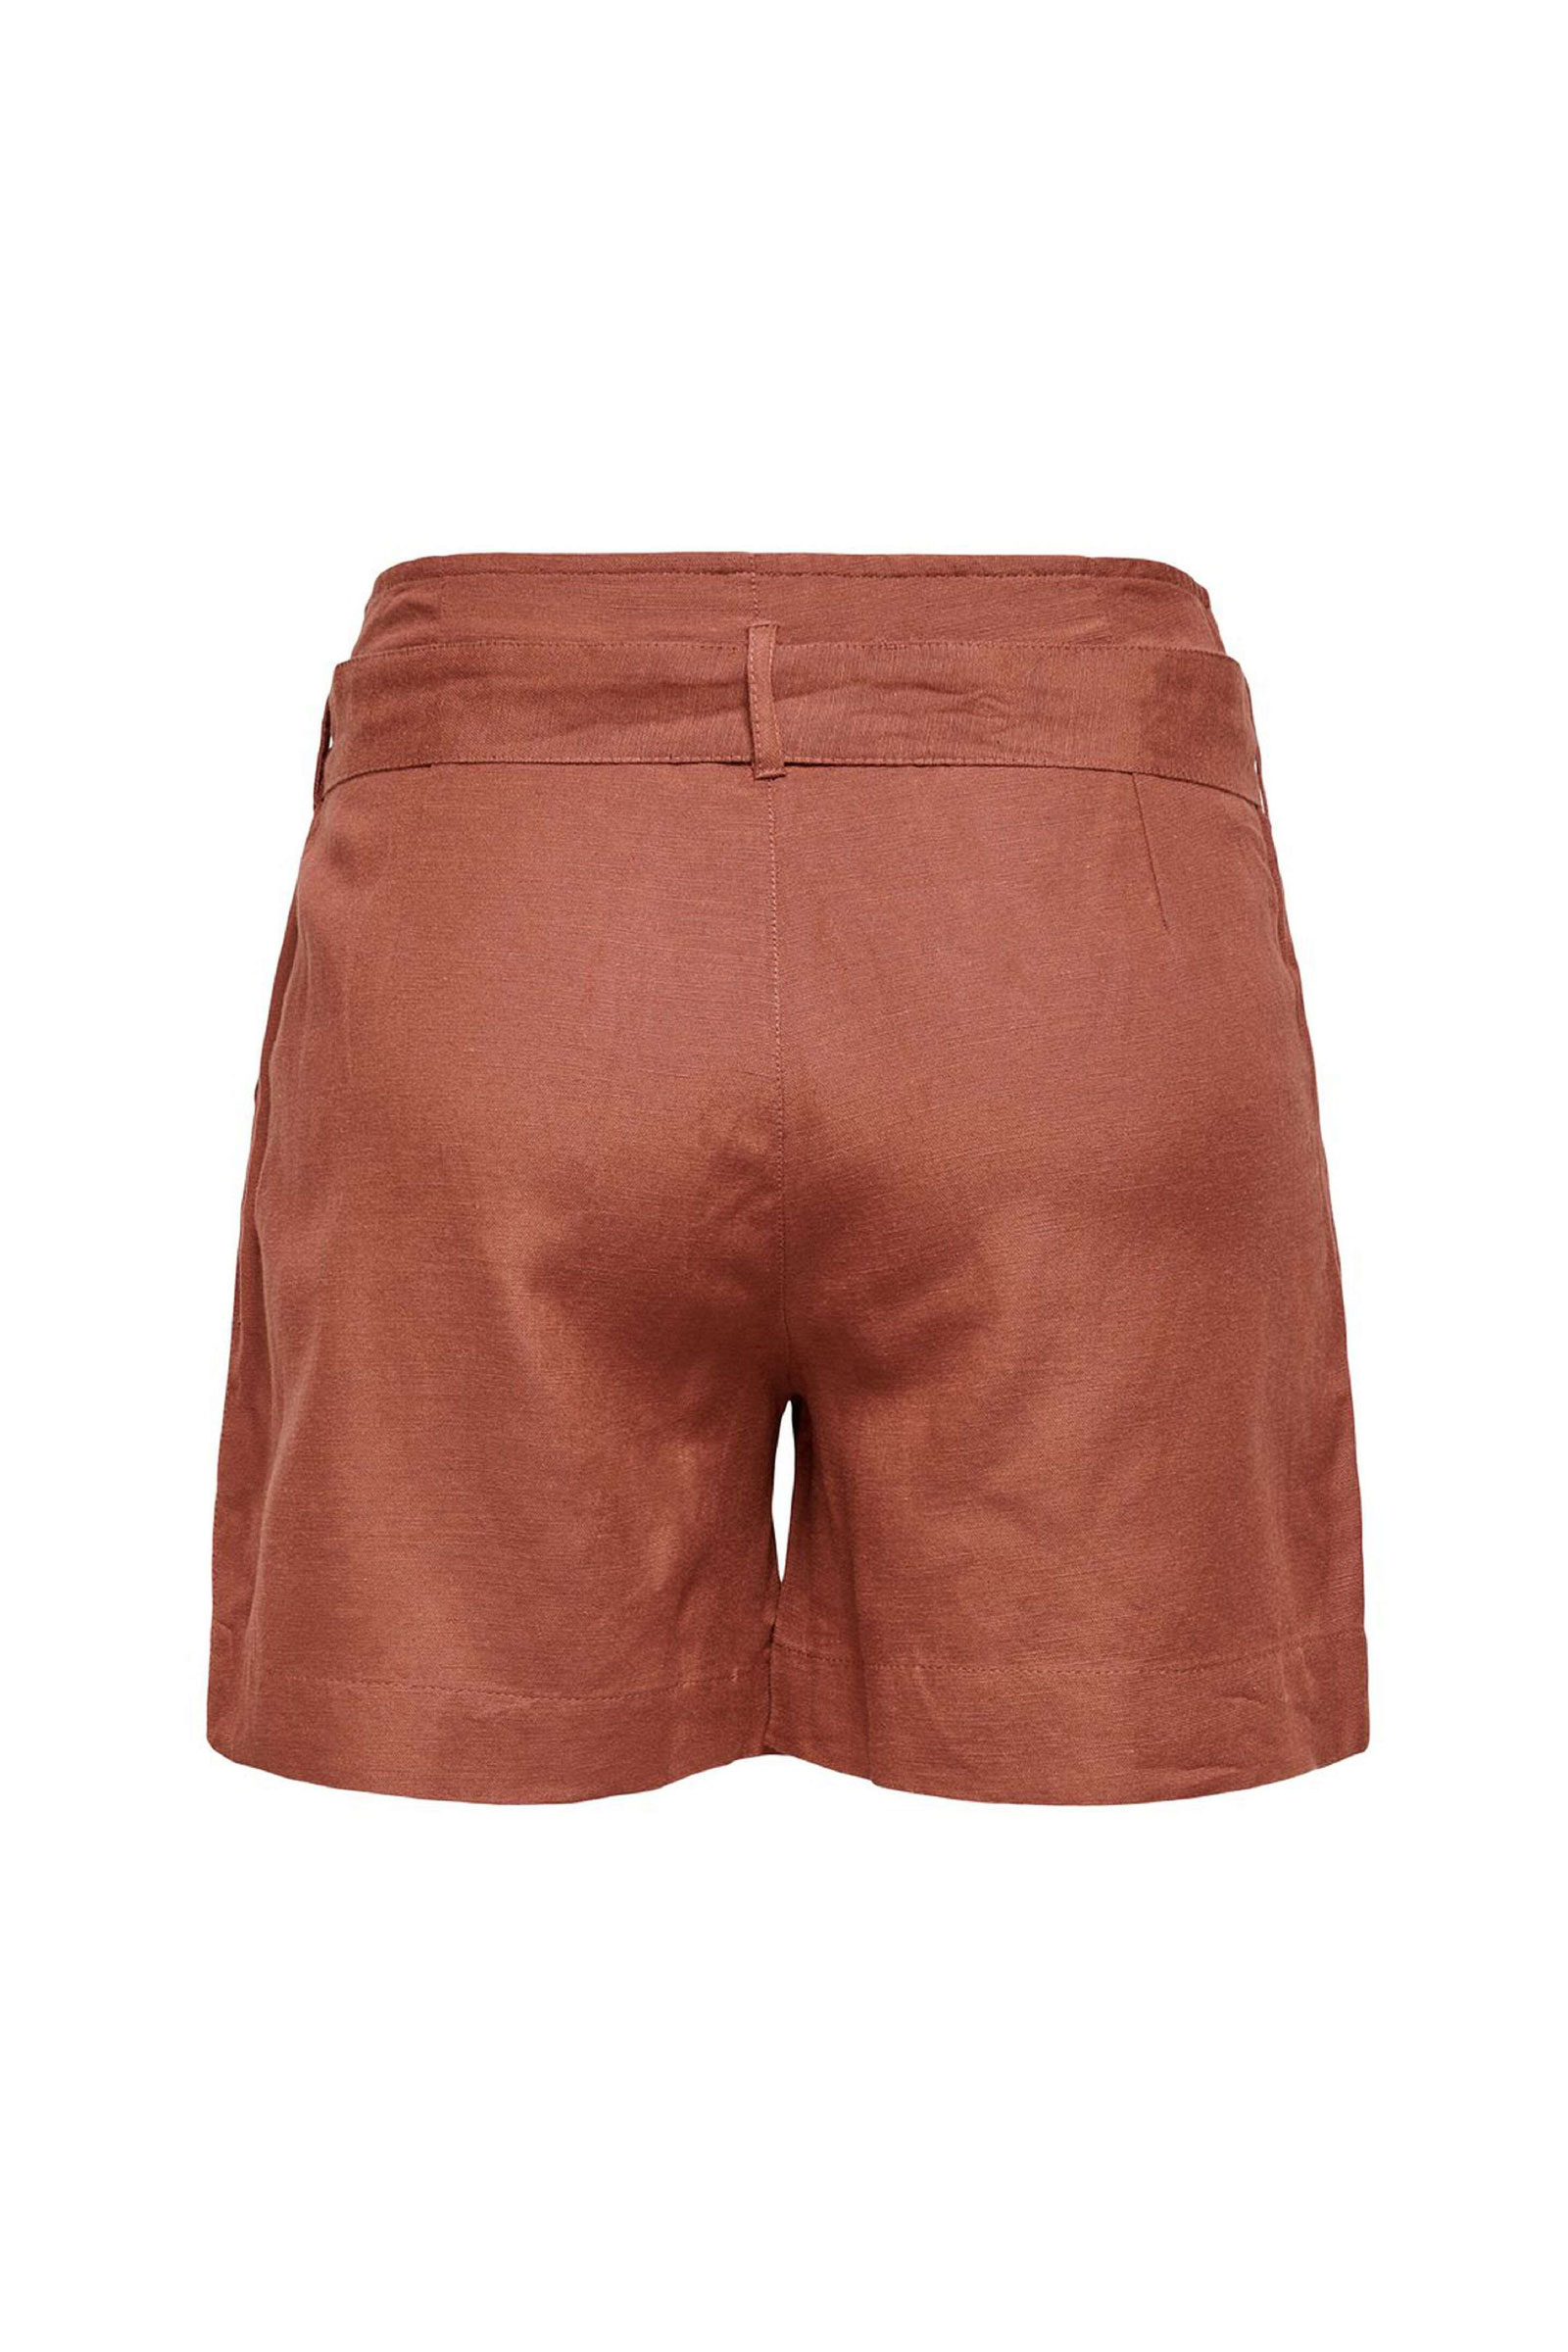 ONLY Shorts Donna ONLY | Shorts | 15199801Apple Butter